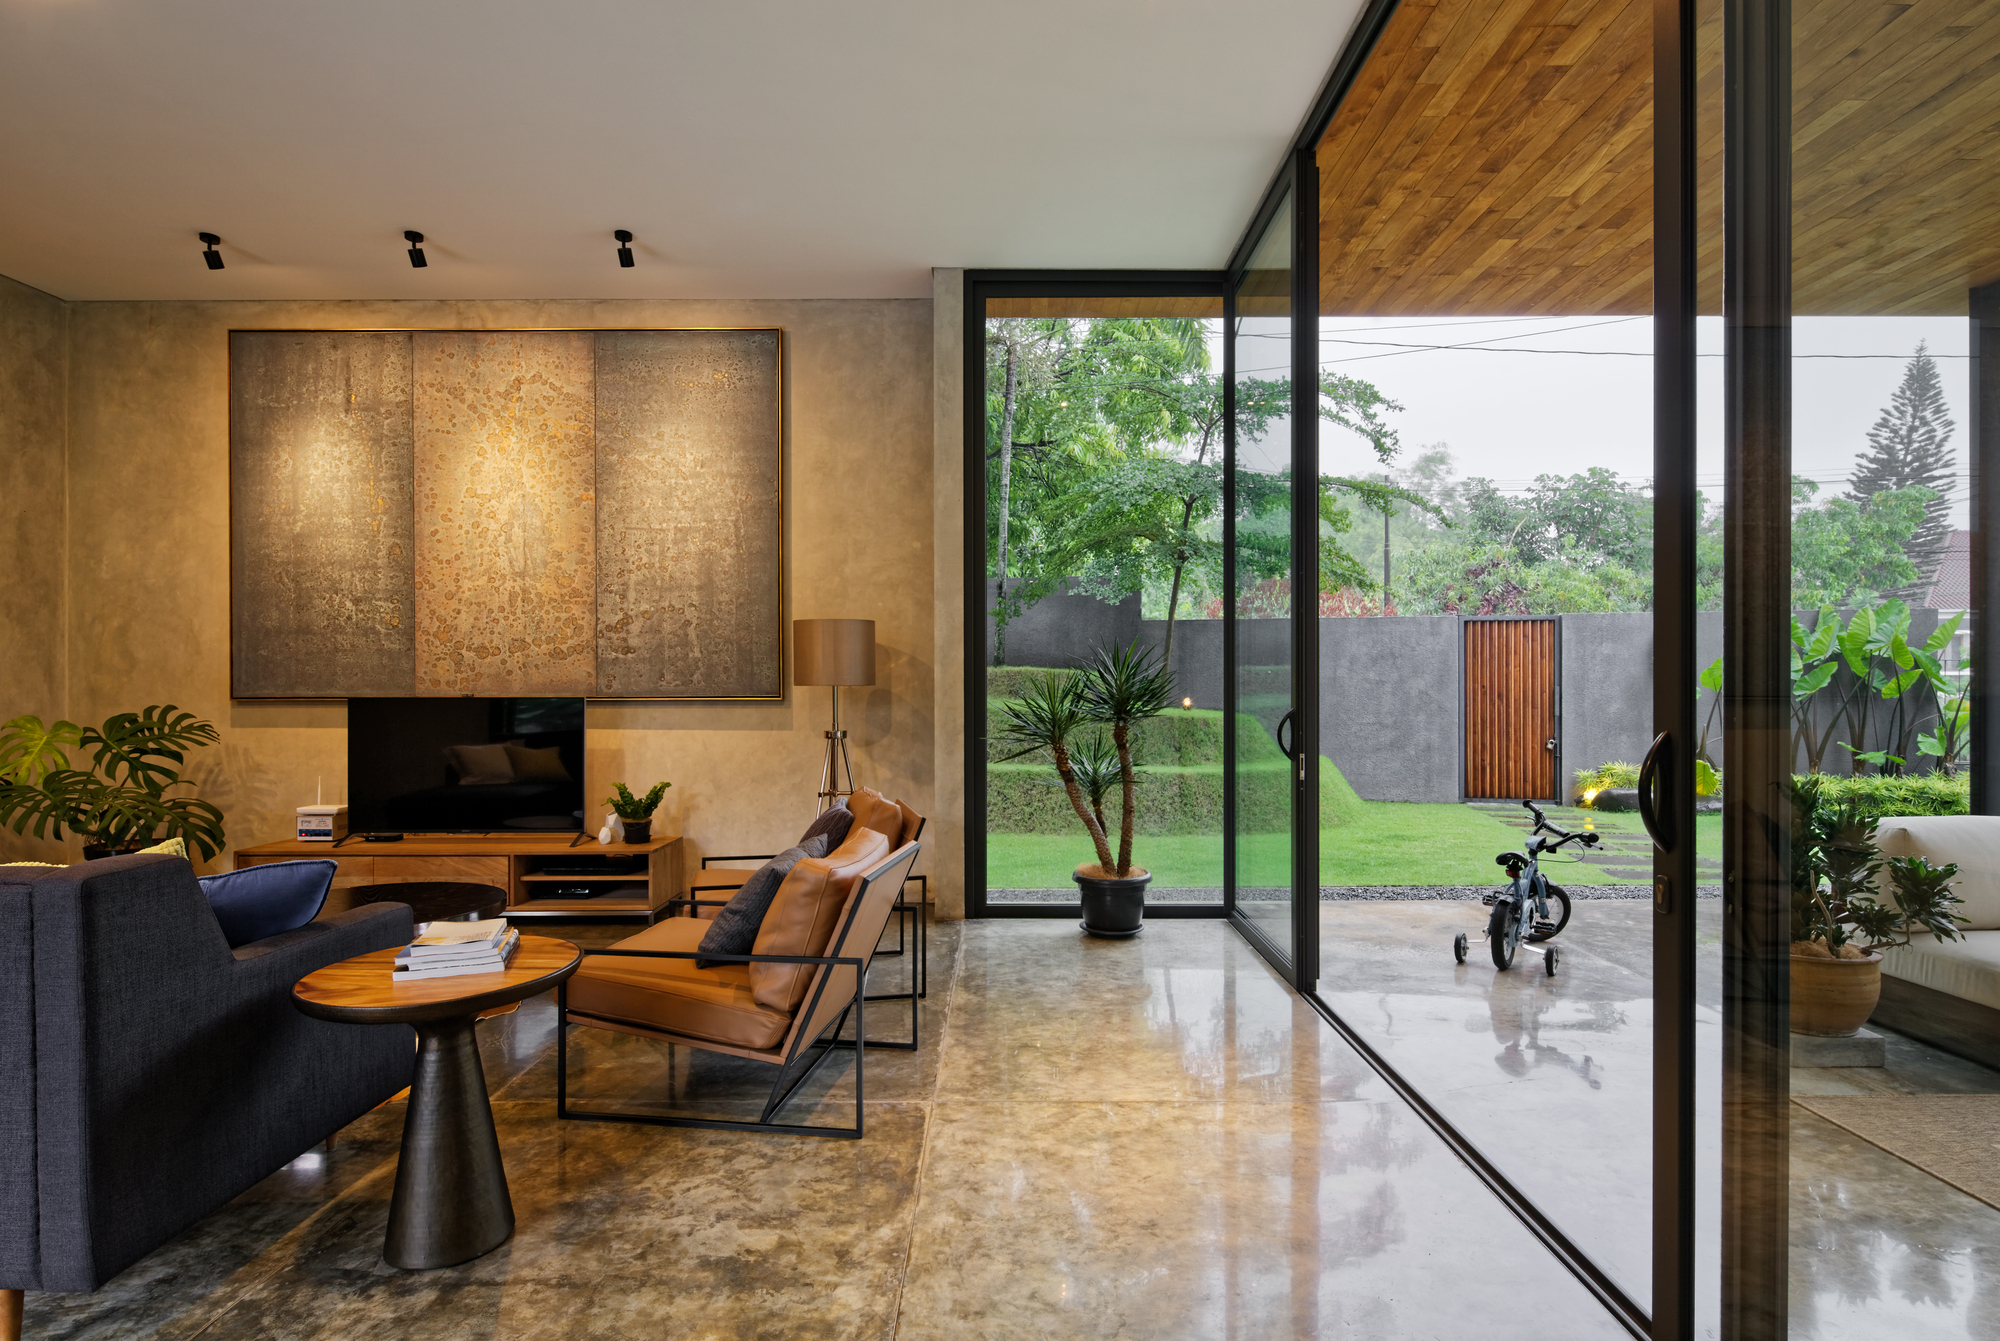 Galeria de Casa Inside Outside  Tamara Wibowo Architects  16